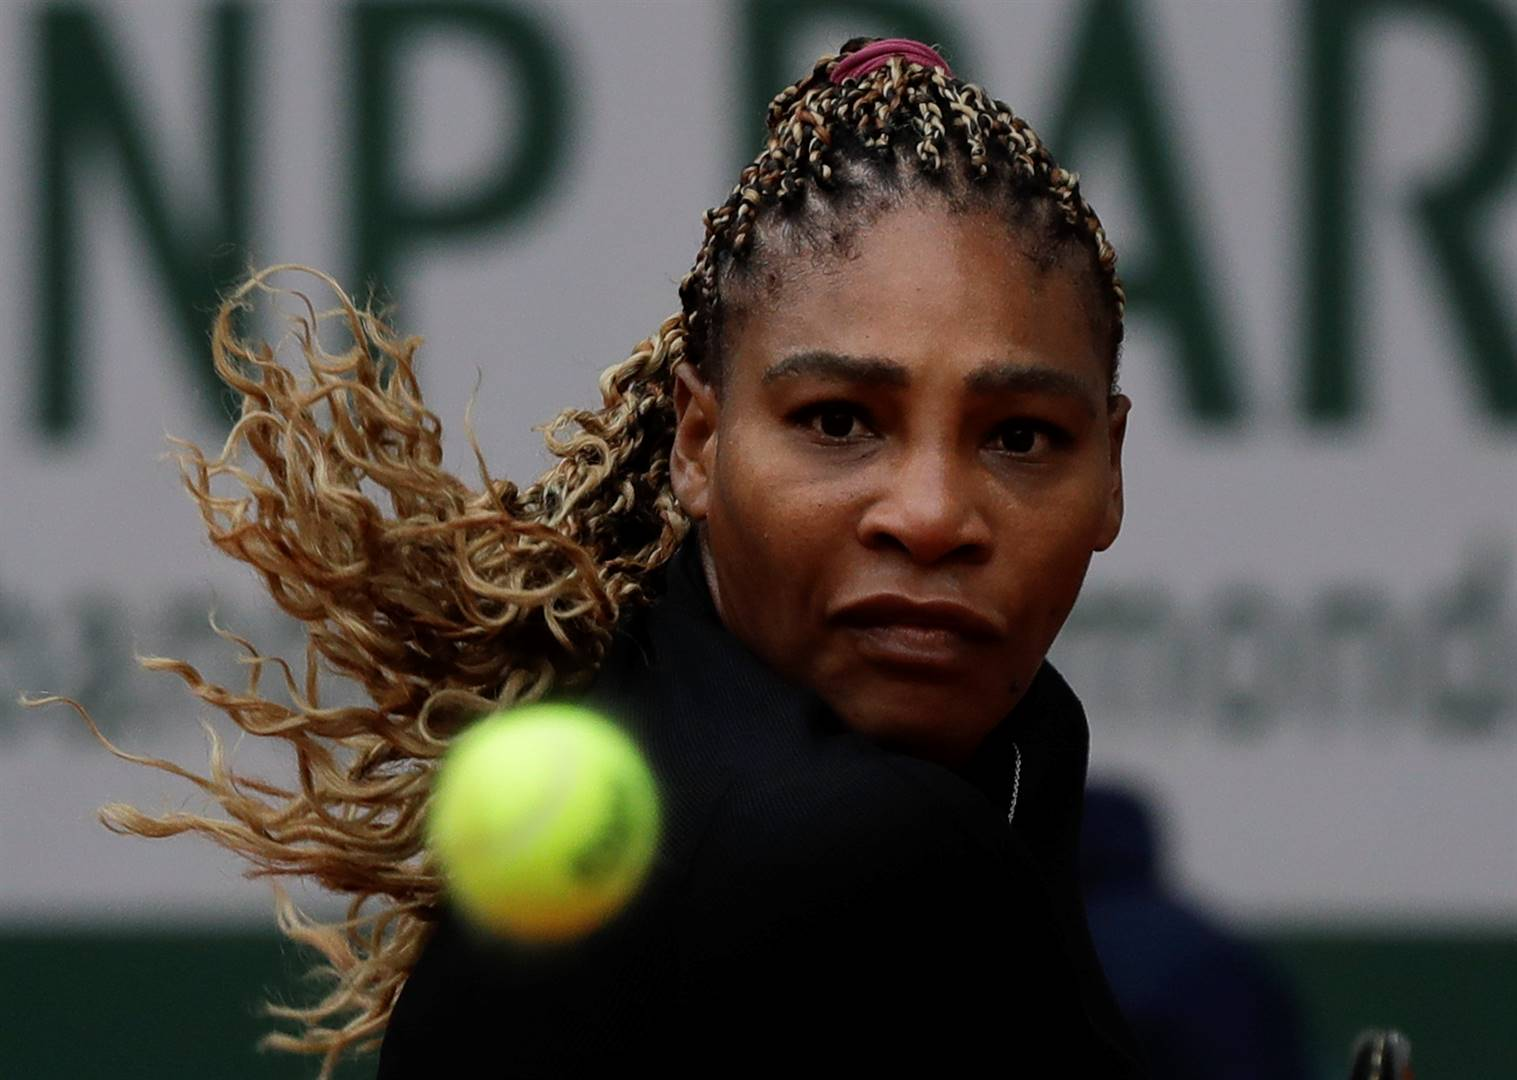 Serena Williams is one of the highest-paid female athletes in the world. Photo: AP